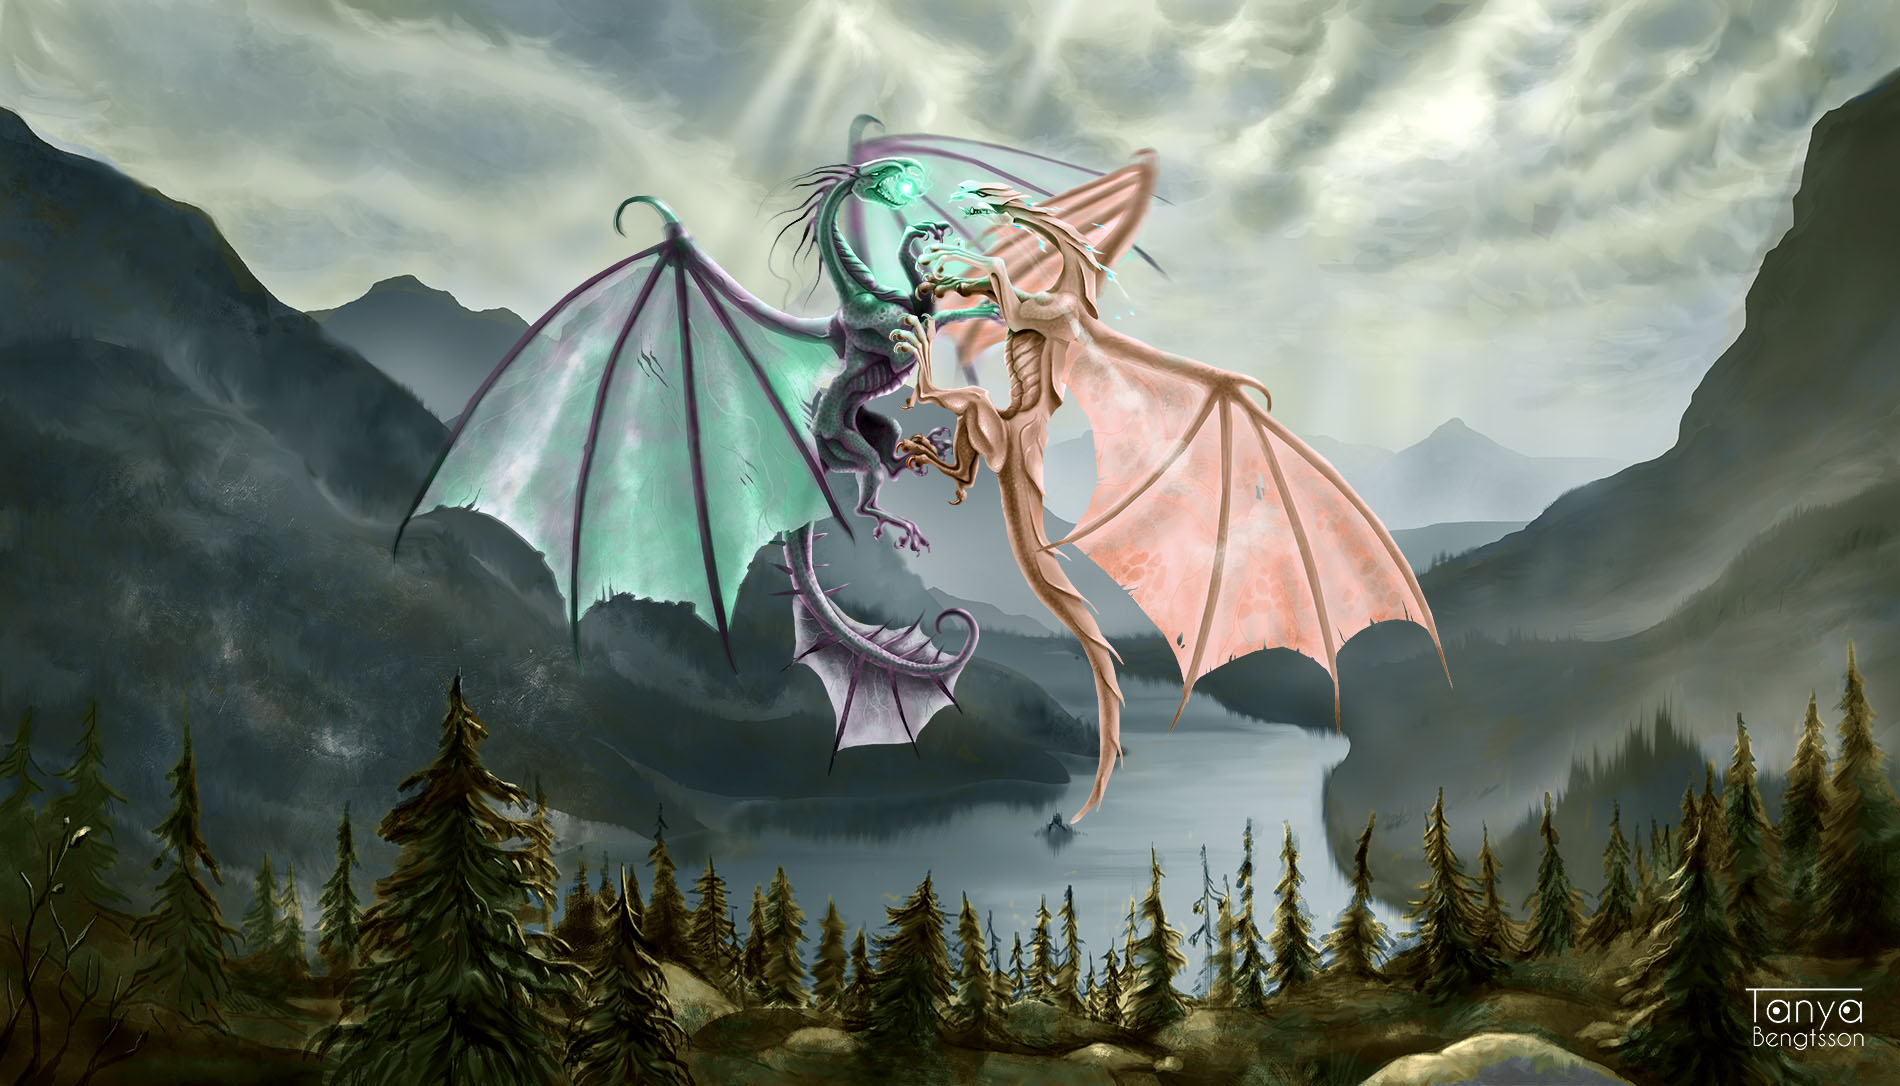 Two dragons fighting in the air above a valley